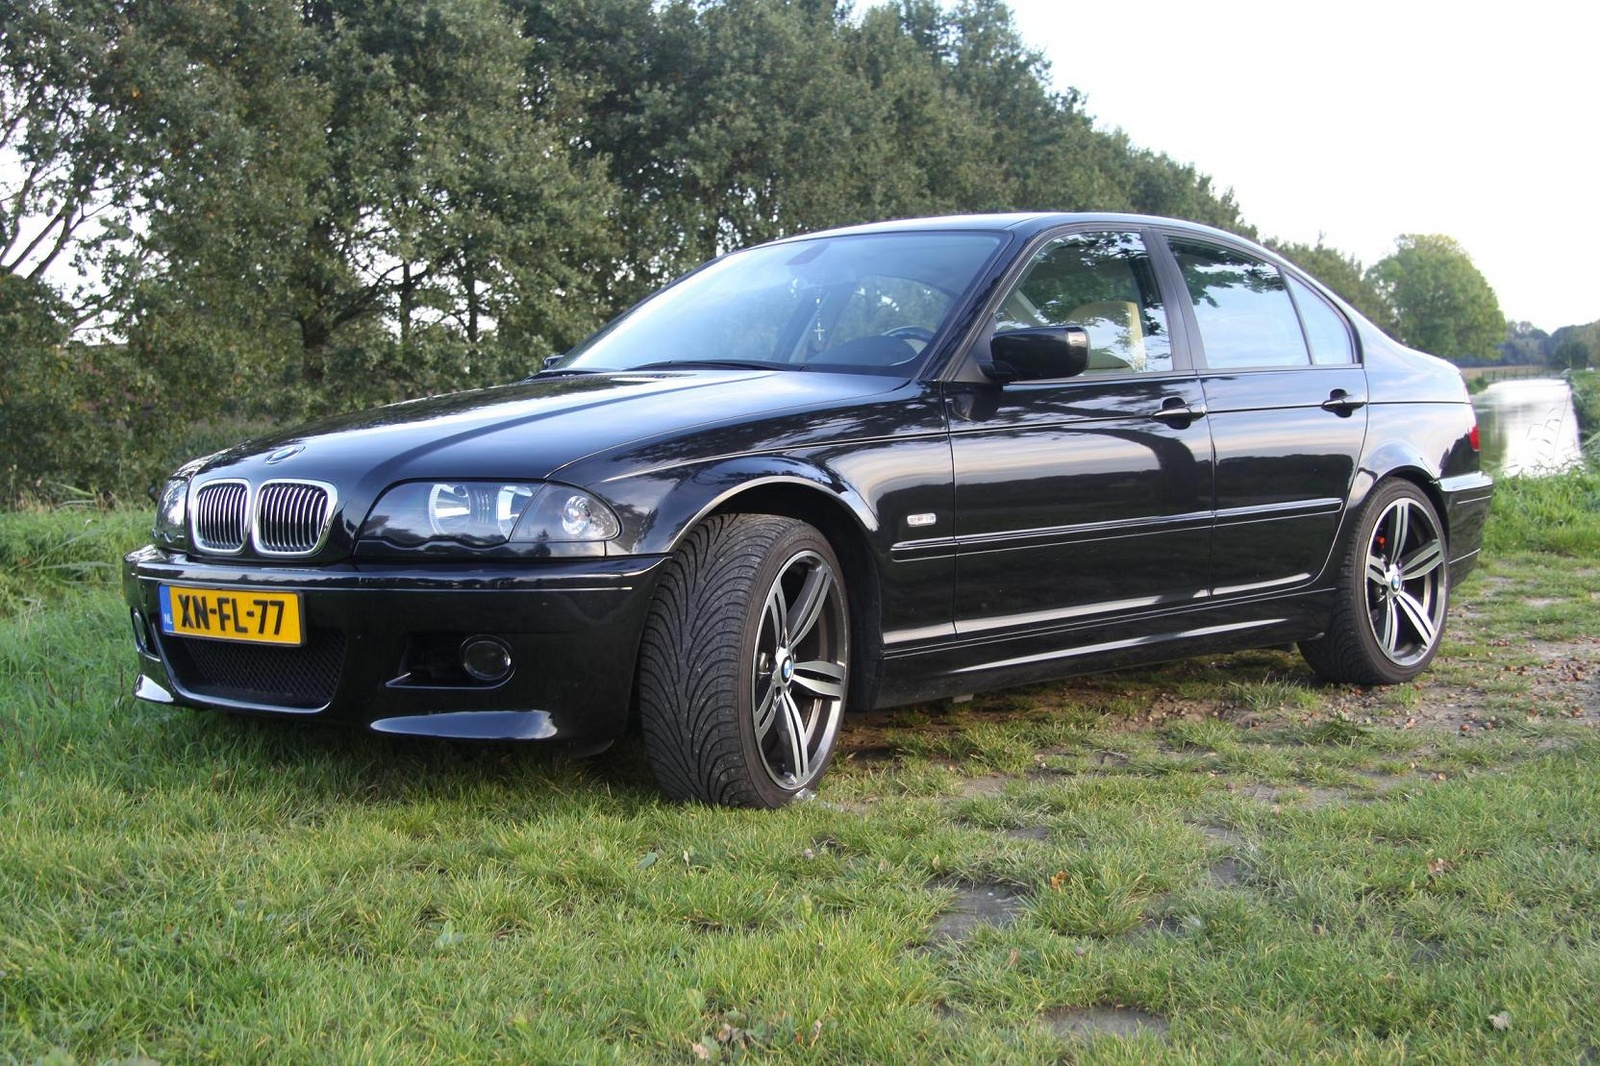 Bmw 318i 2003 Review Amazing Pictures And Images Look